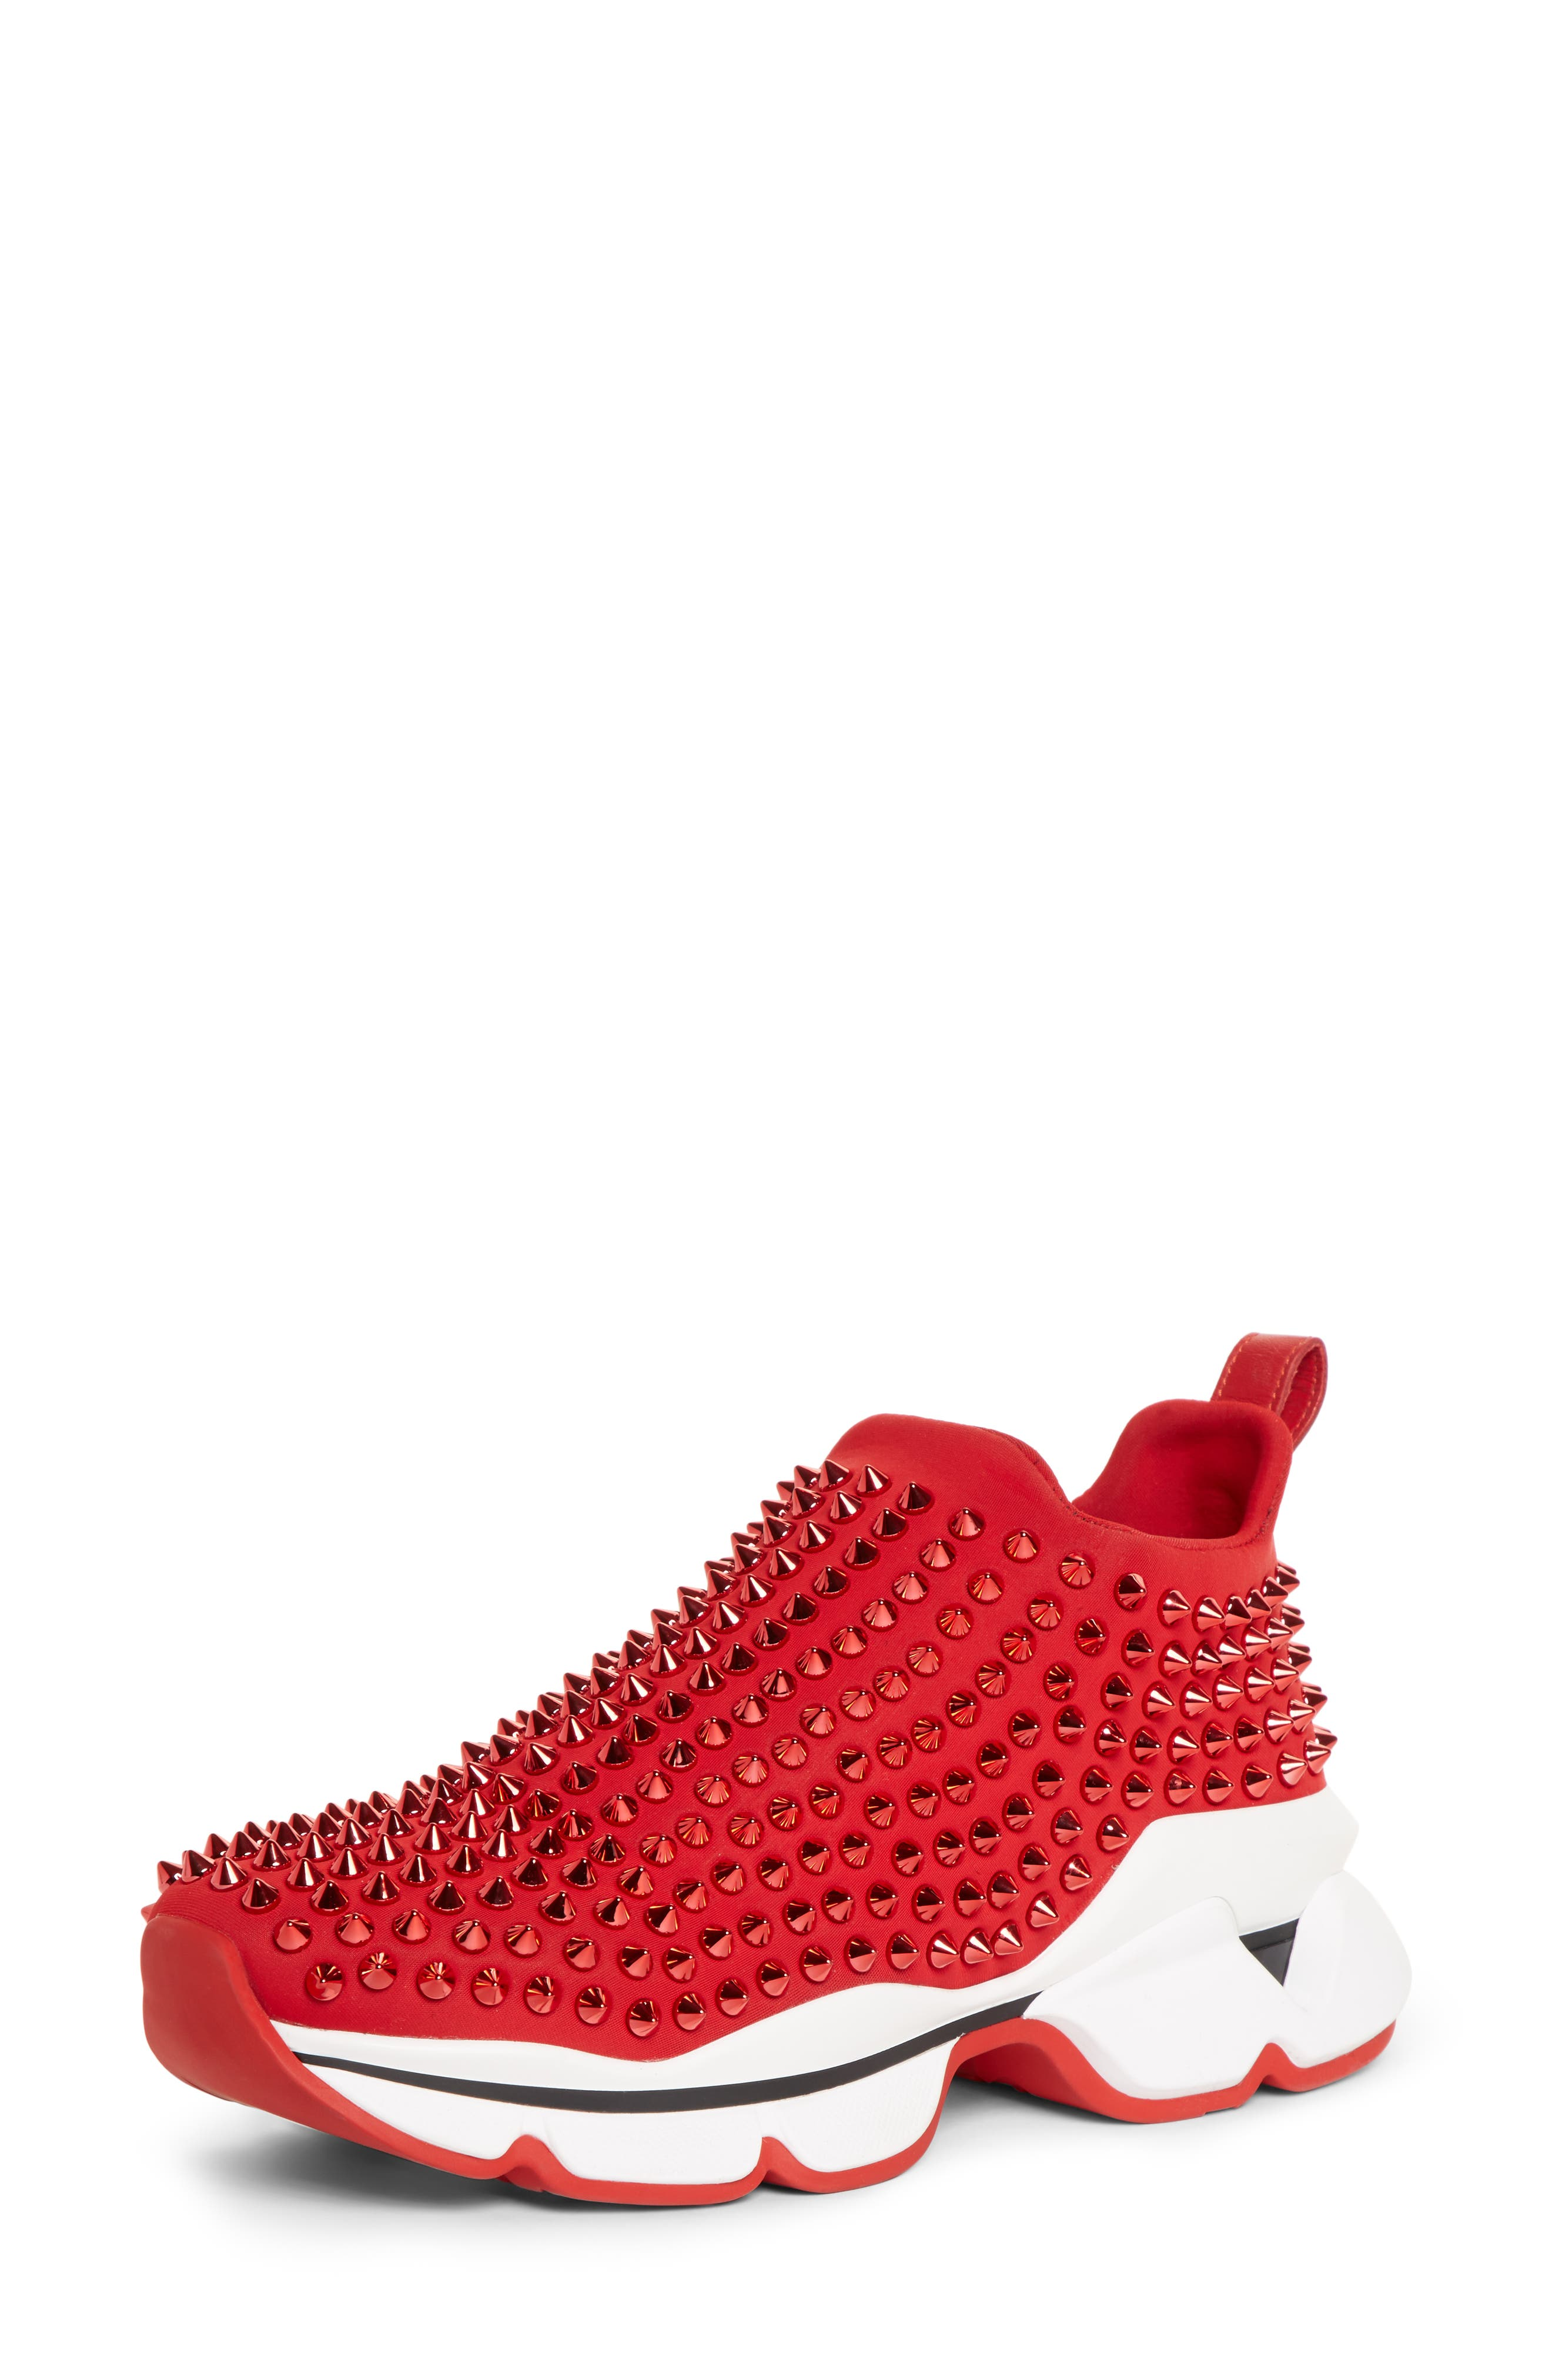 huge discount a33dd 5146b Women's Christian Louboutin Sneakers & Running Shoes | Nordstrom